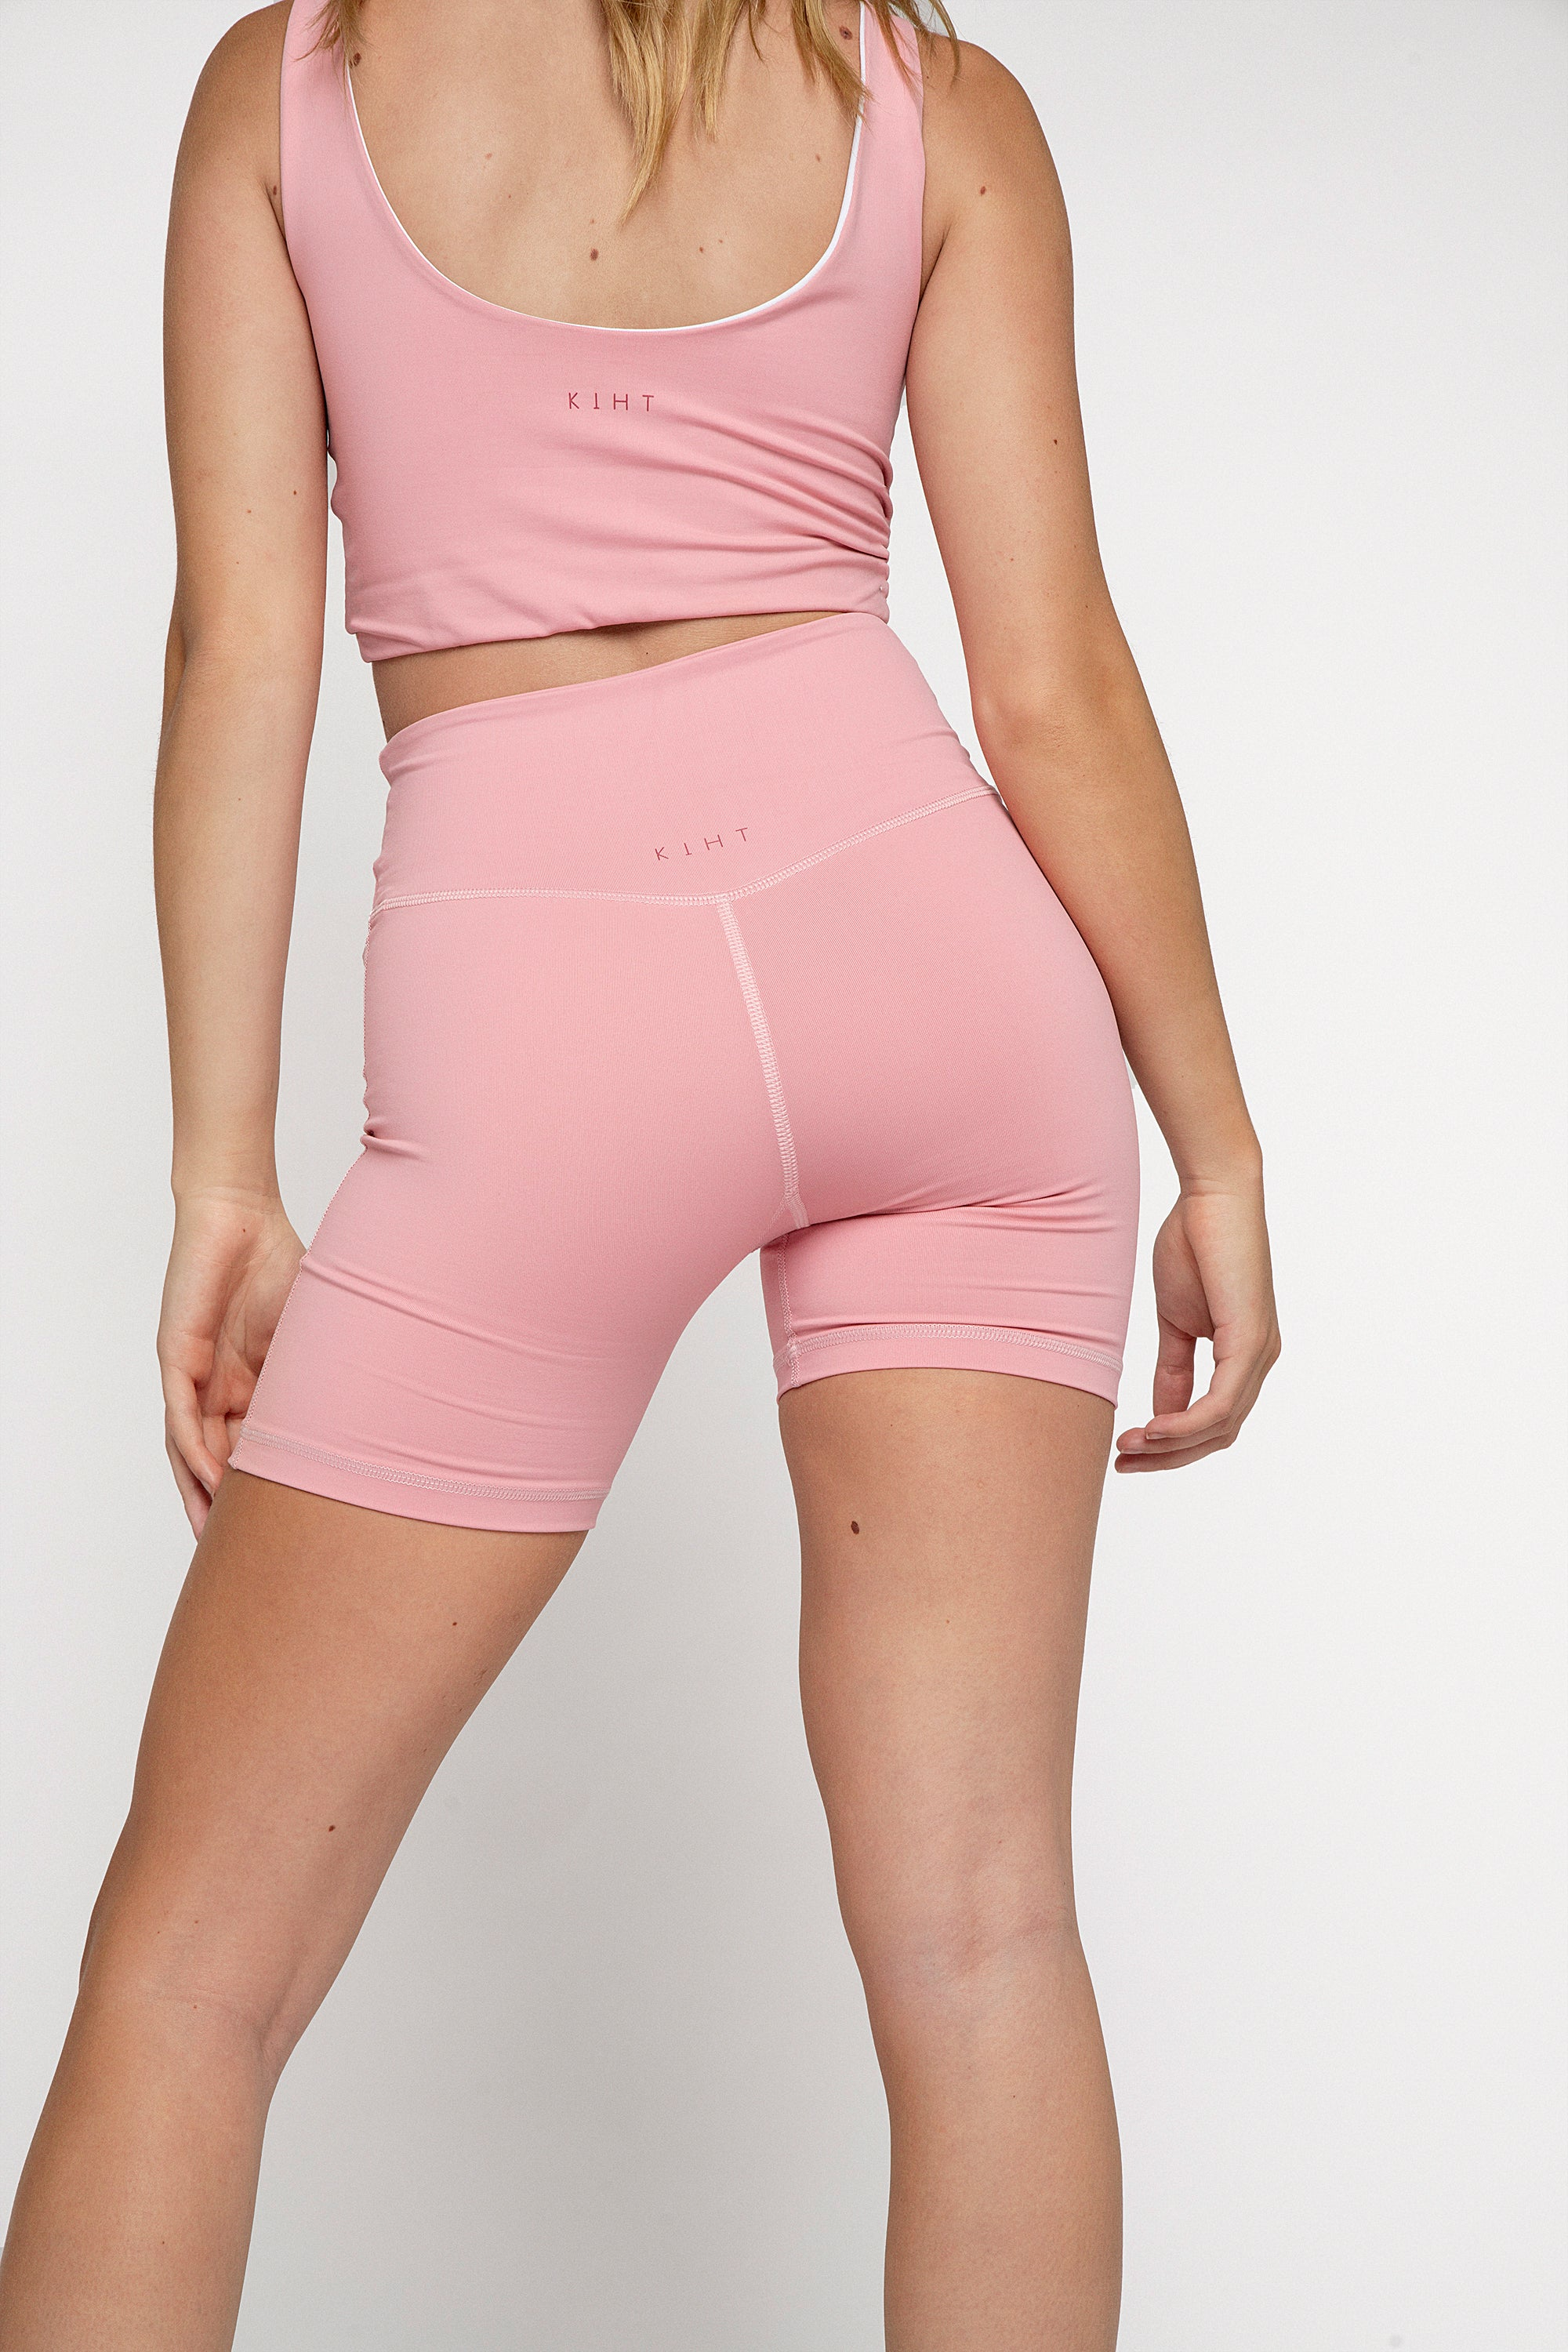 High waisted flattering bike short in Pink Lemonade. Compressive fit and super soft fabric, wide supportive waistband that v's at the back and flatters to butt. Back